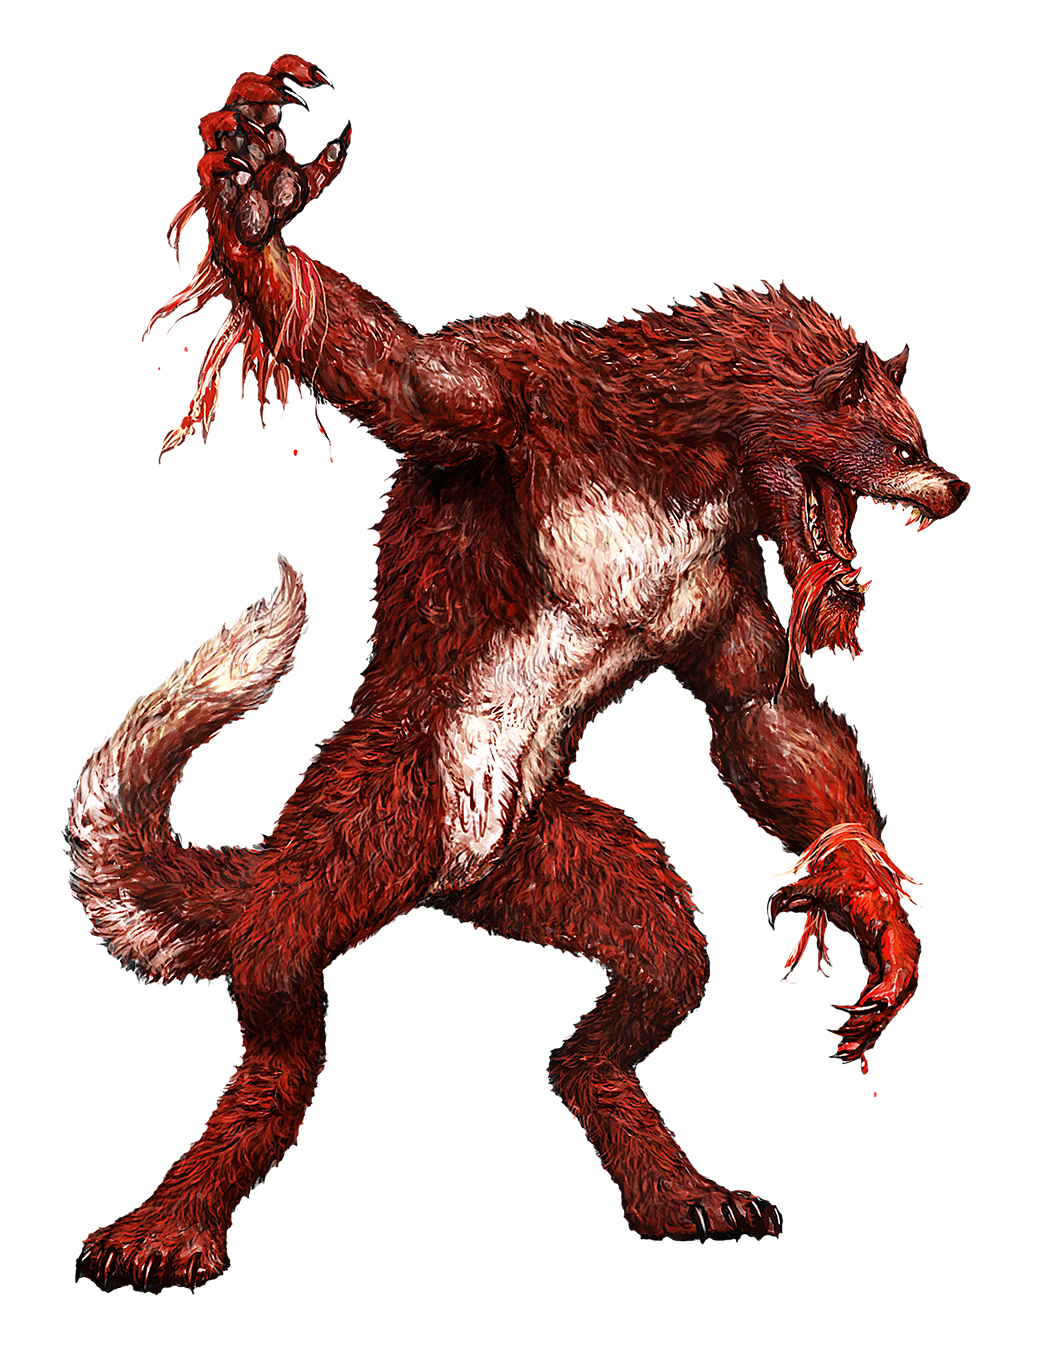 Midgard Monster Lore: The Nightgarm (Part 2)